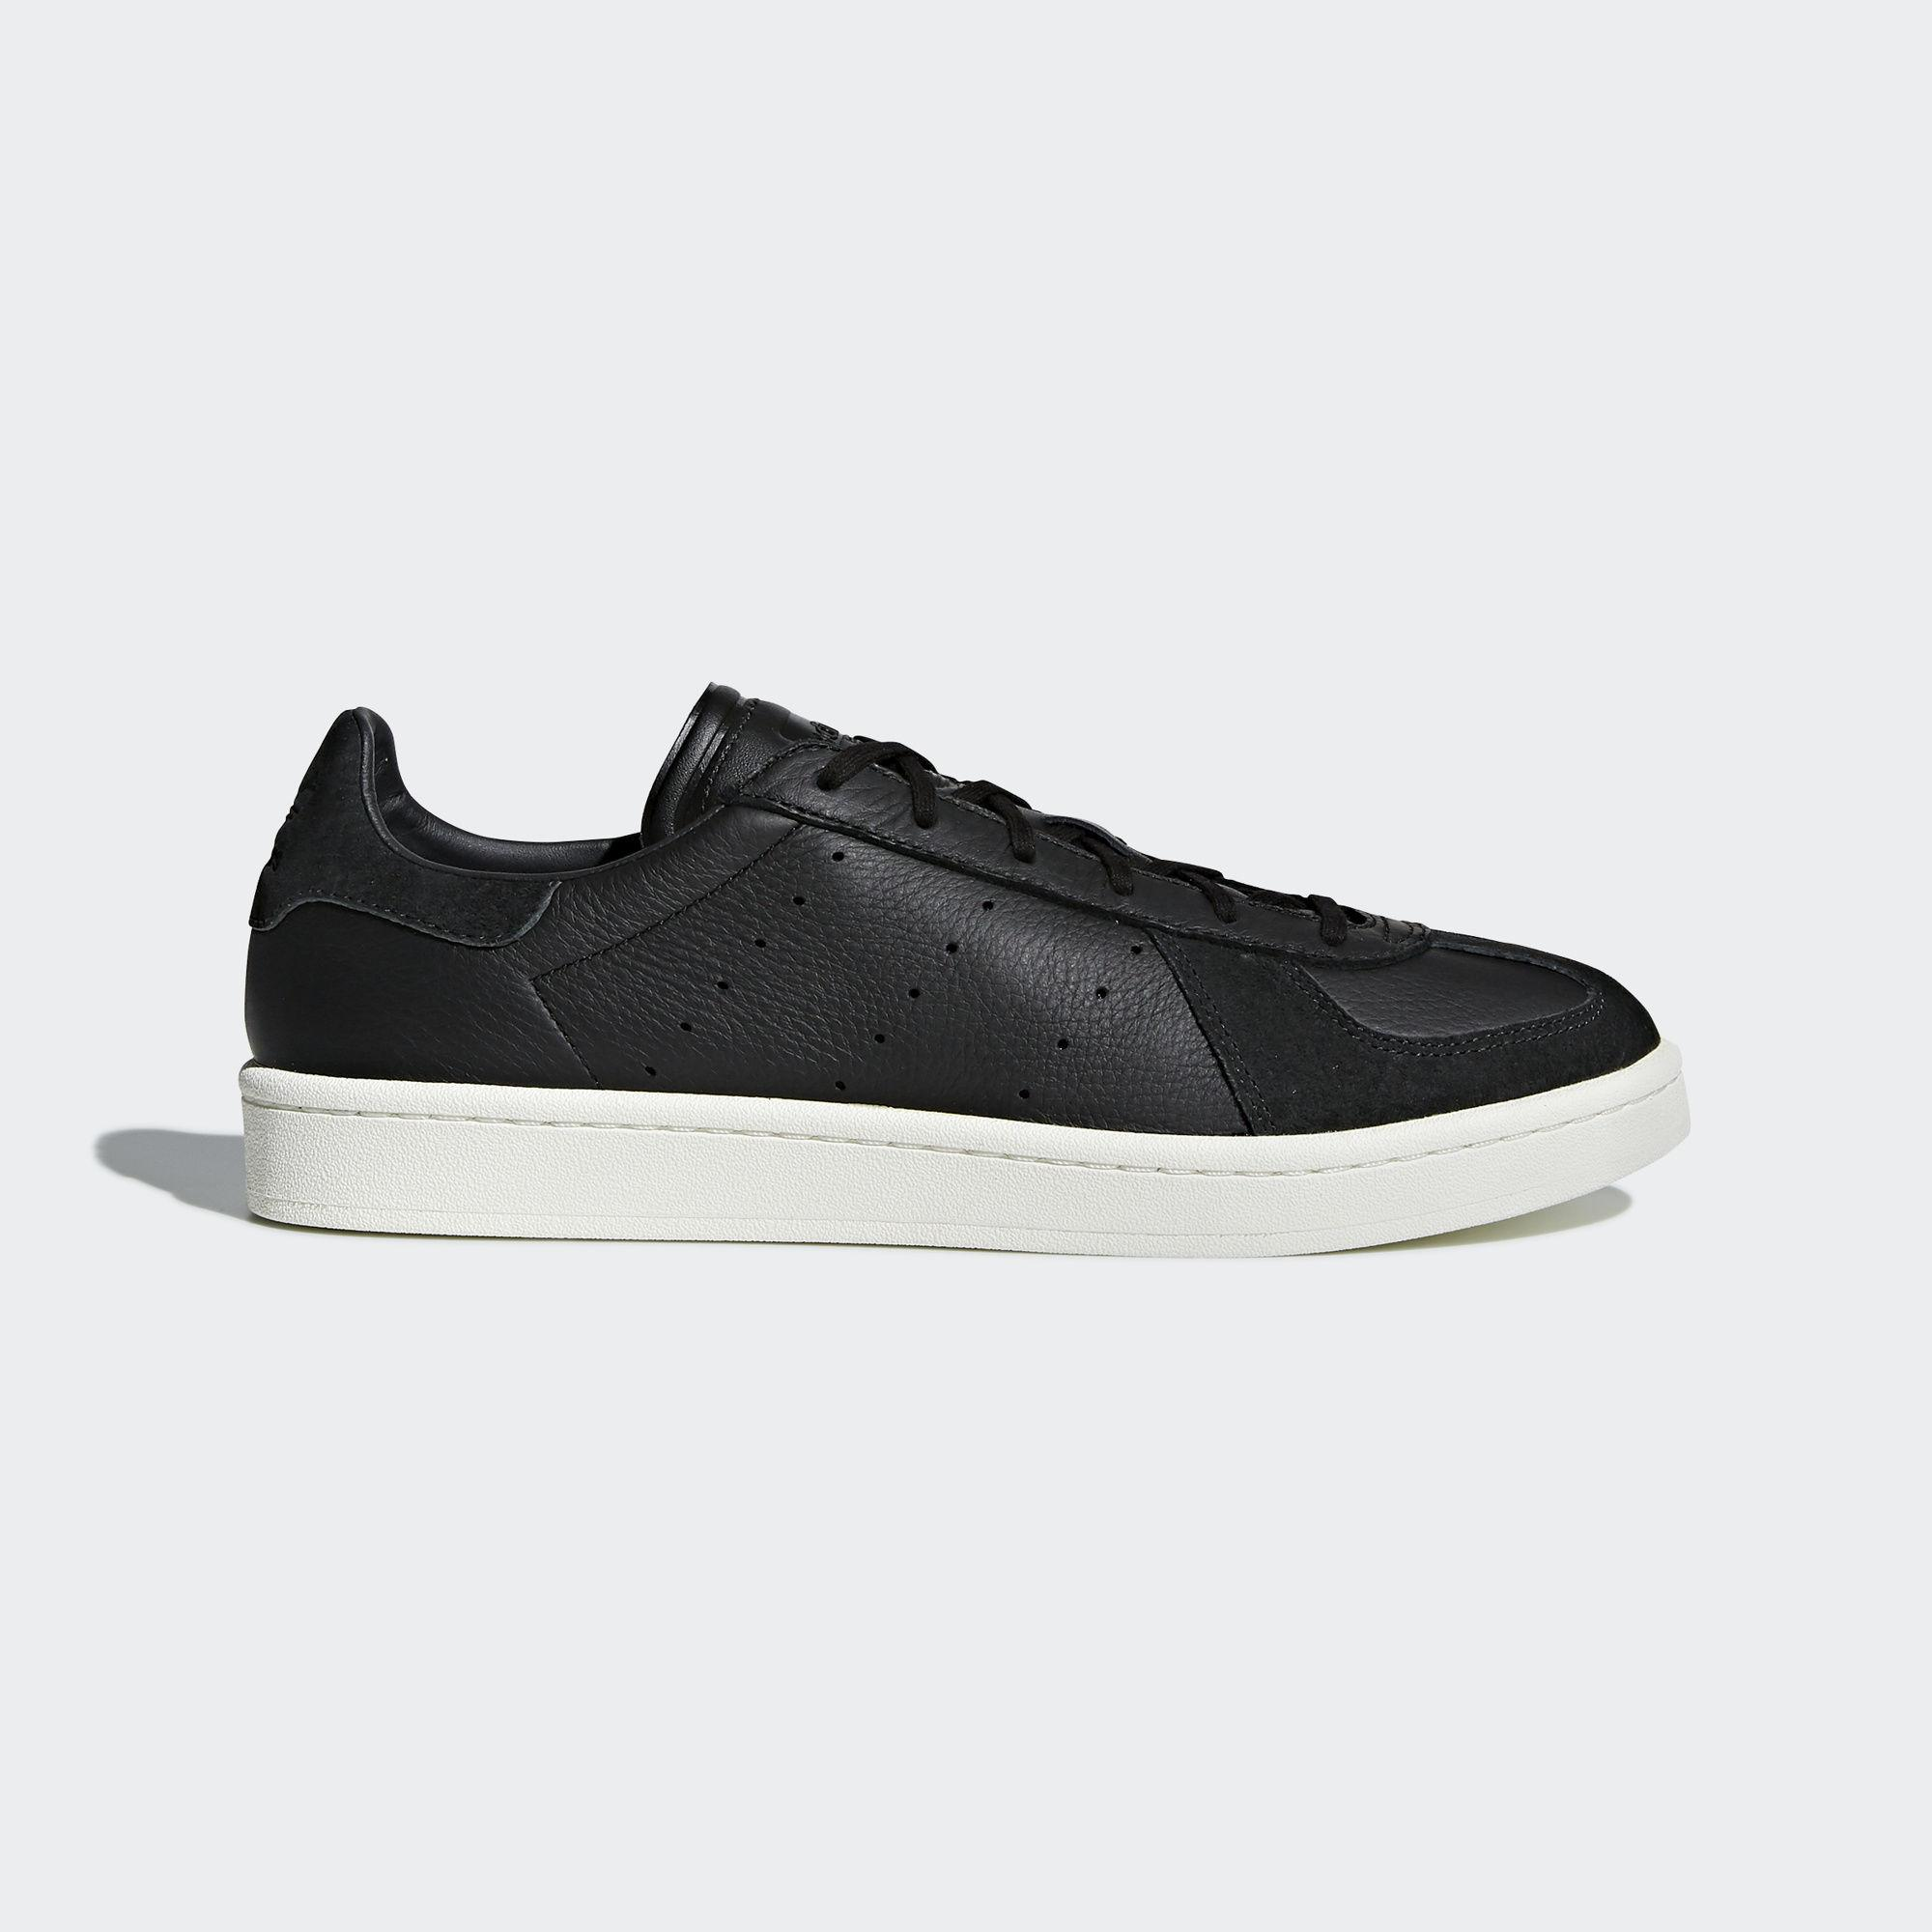 huge discount 615d3 57943 Lyst - Adidas Bw Avenue Shoes in Black for Men